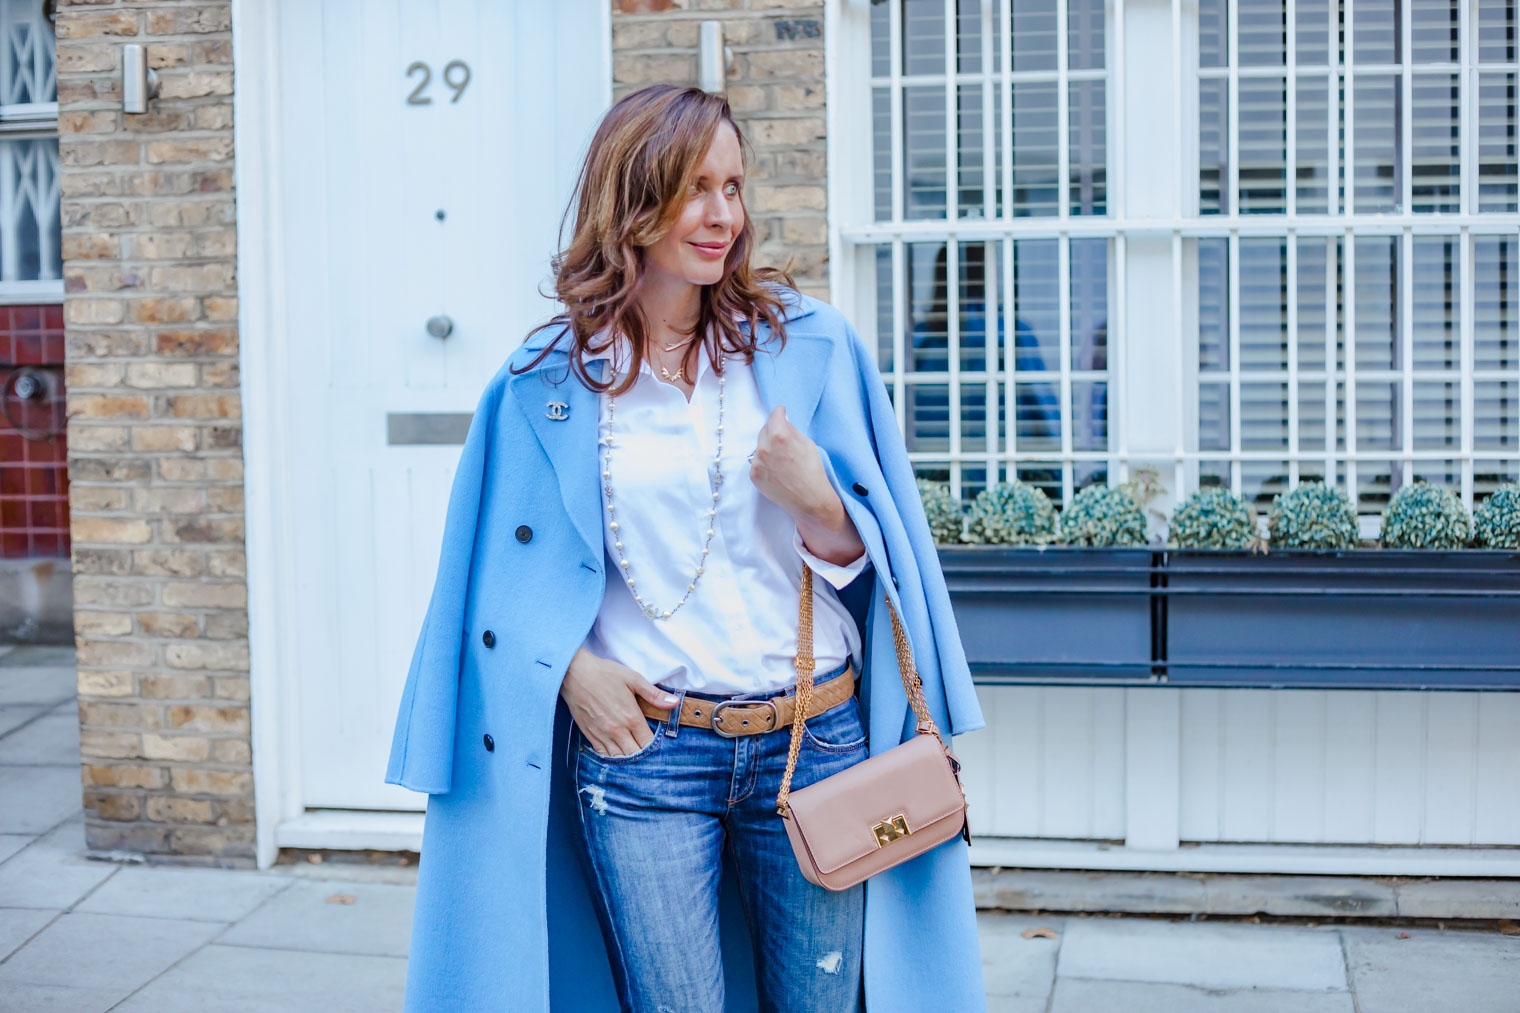 Blue coat Chanel outfit casual outfit with white shirt